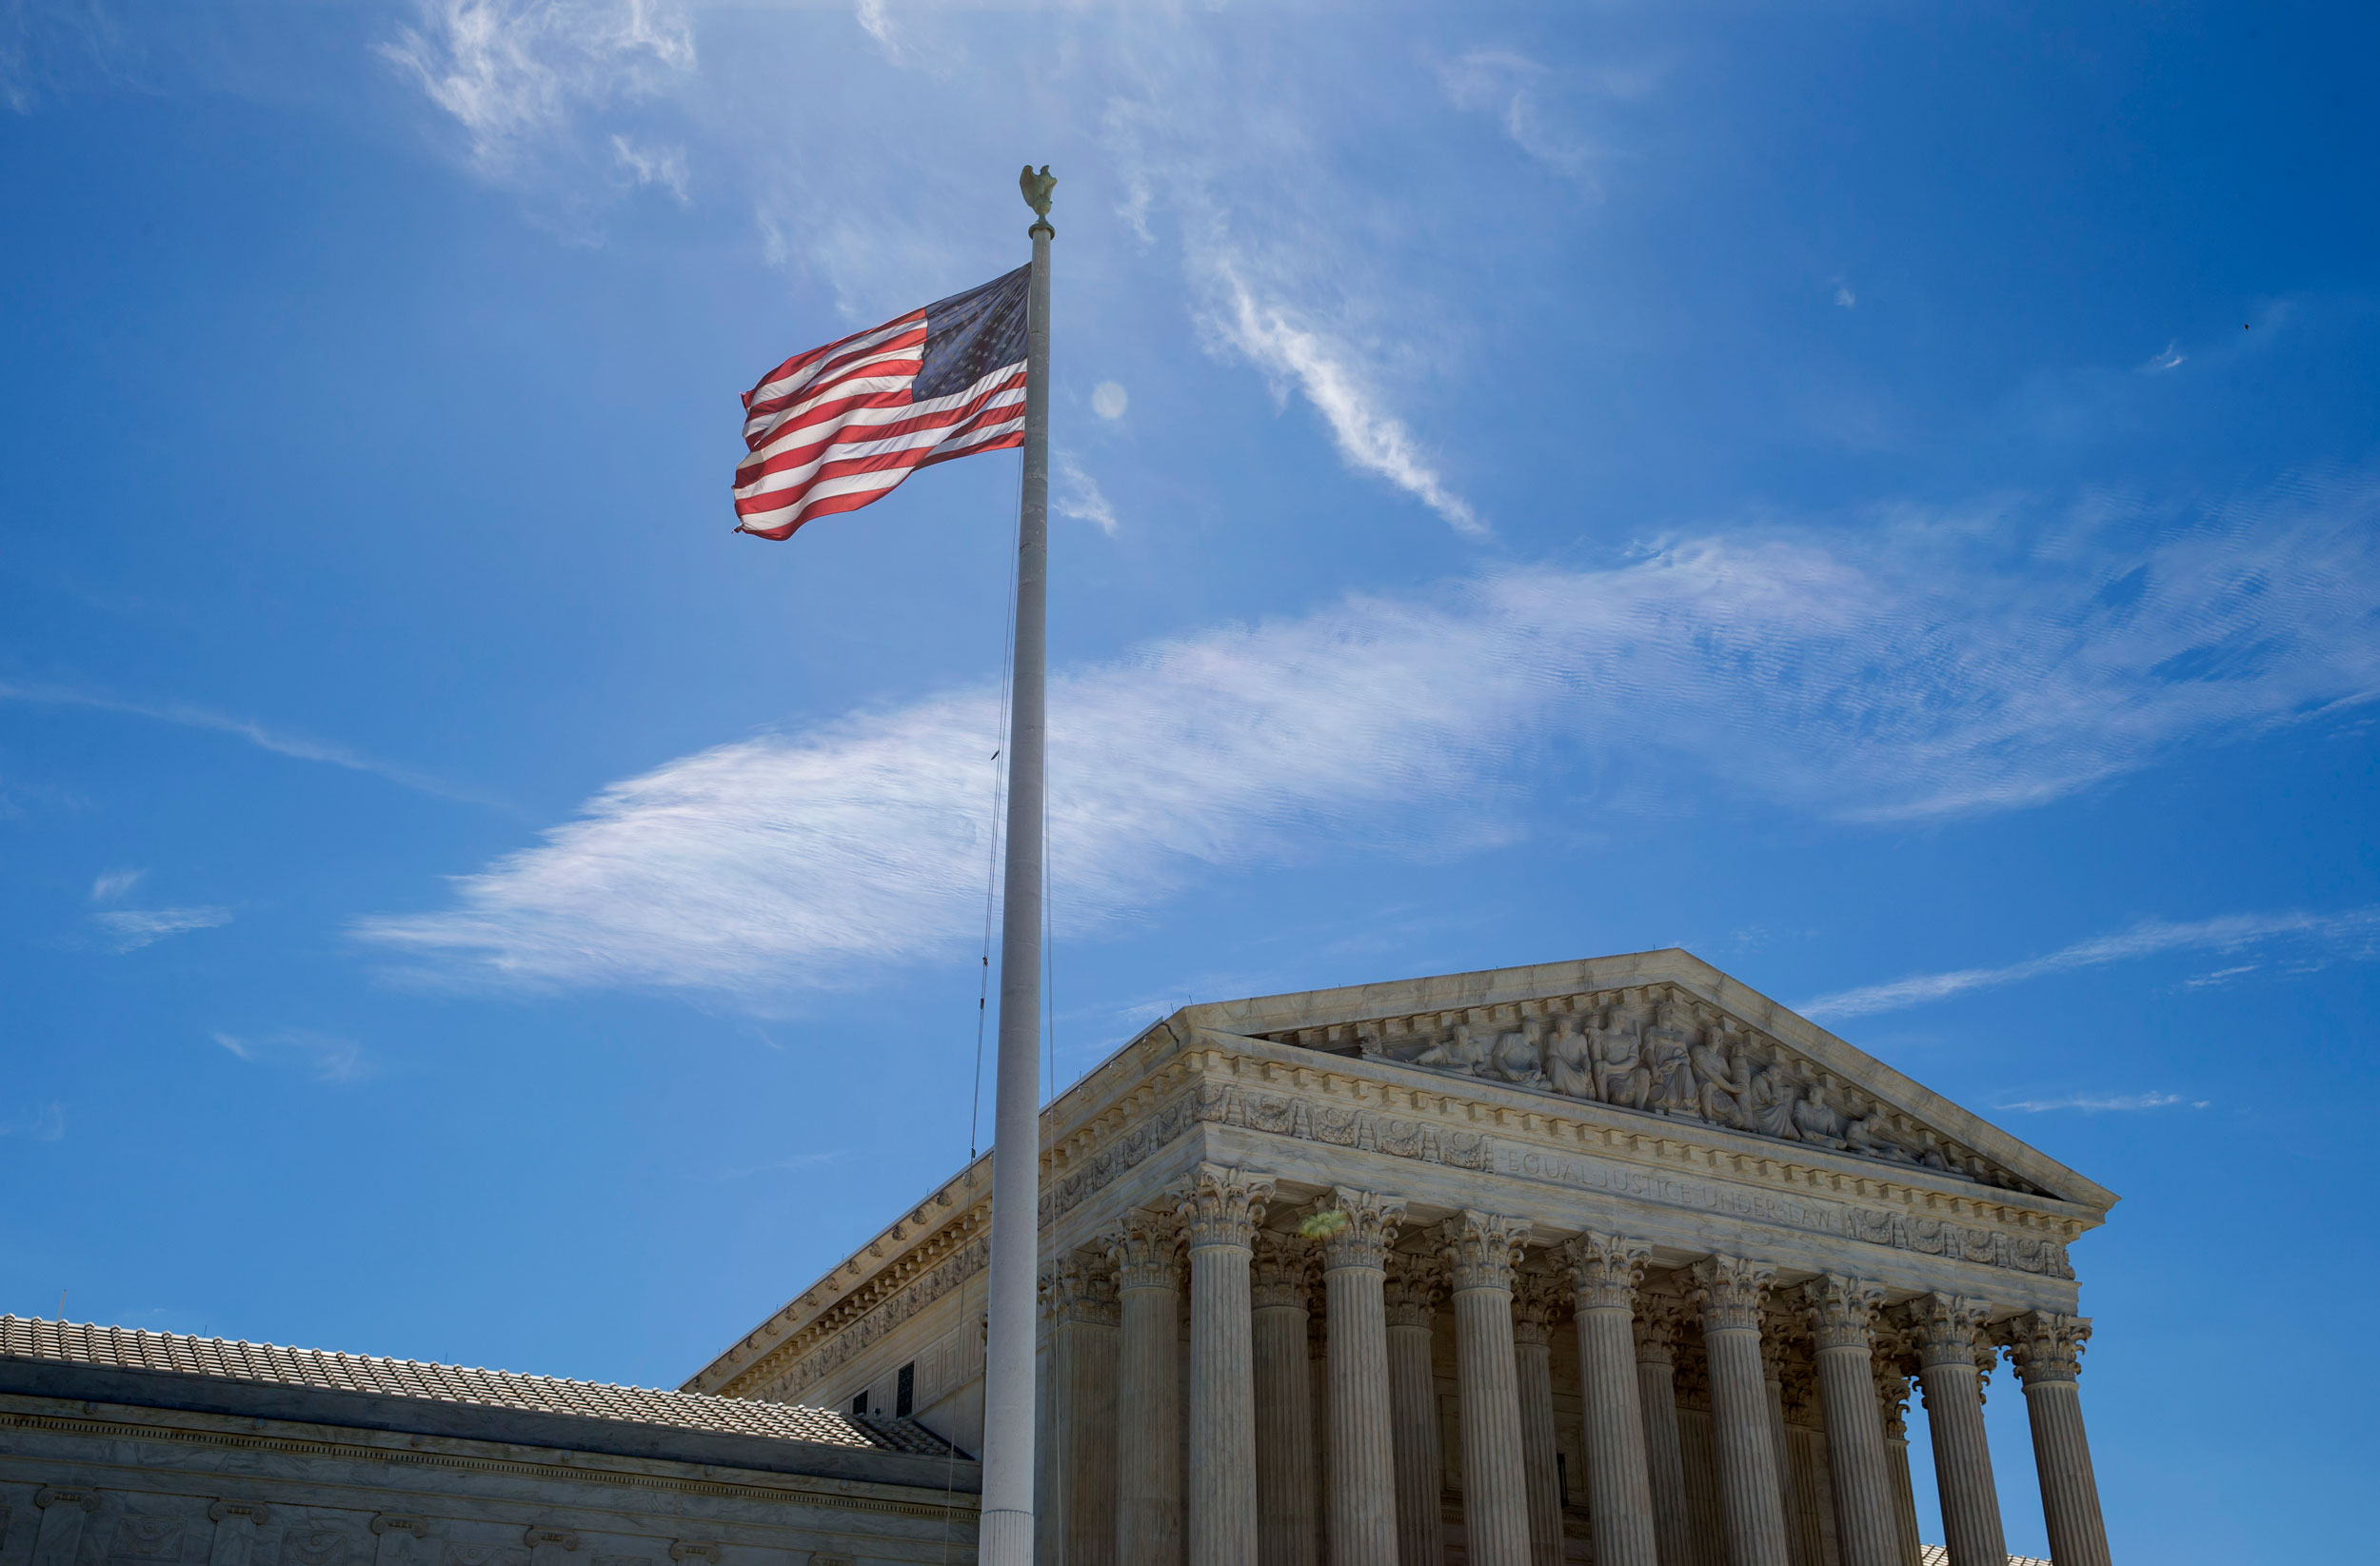 READ: Supreme Court decision on Wisconsin primary election